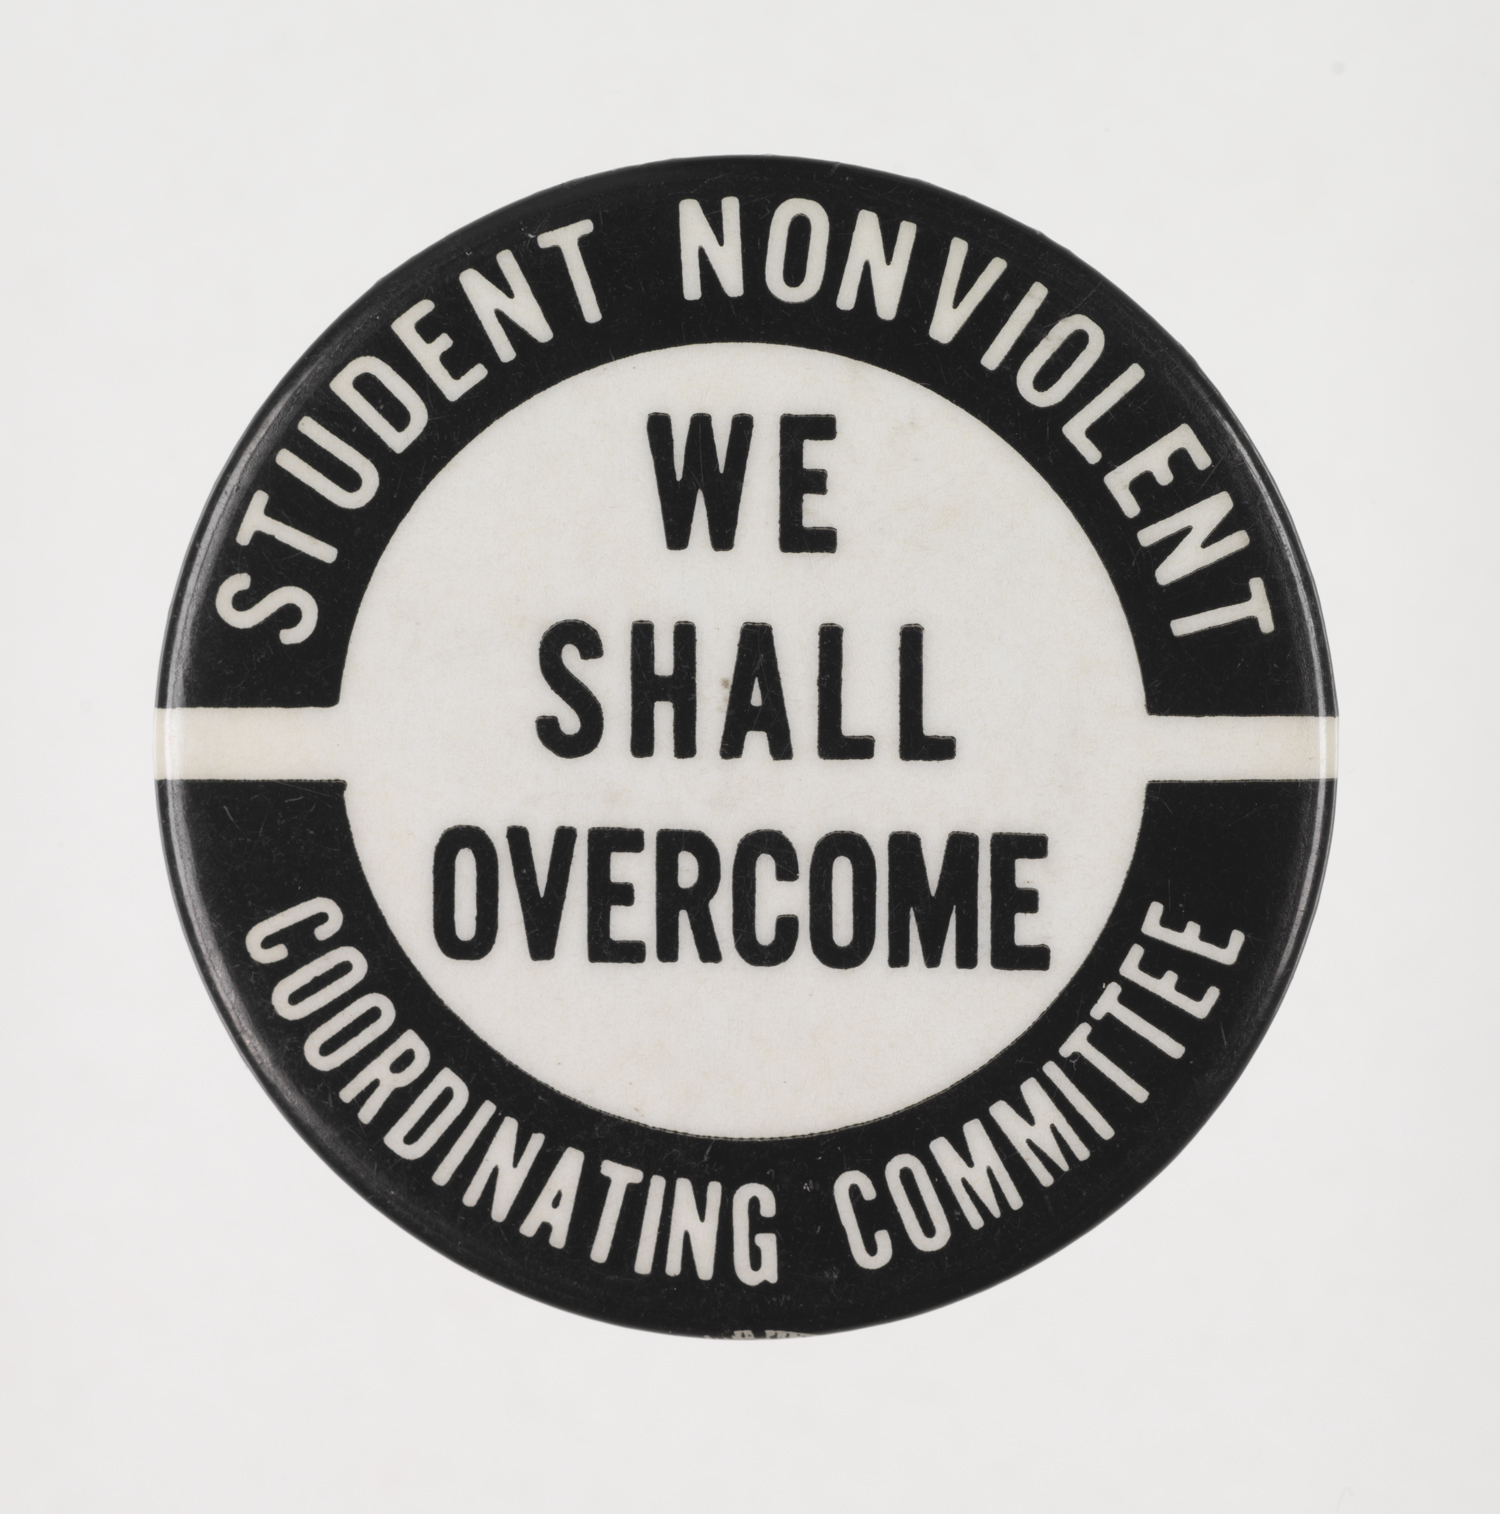 Student nonviolent coordinating committee definition